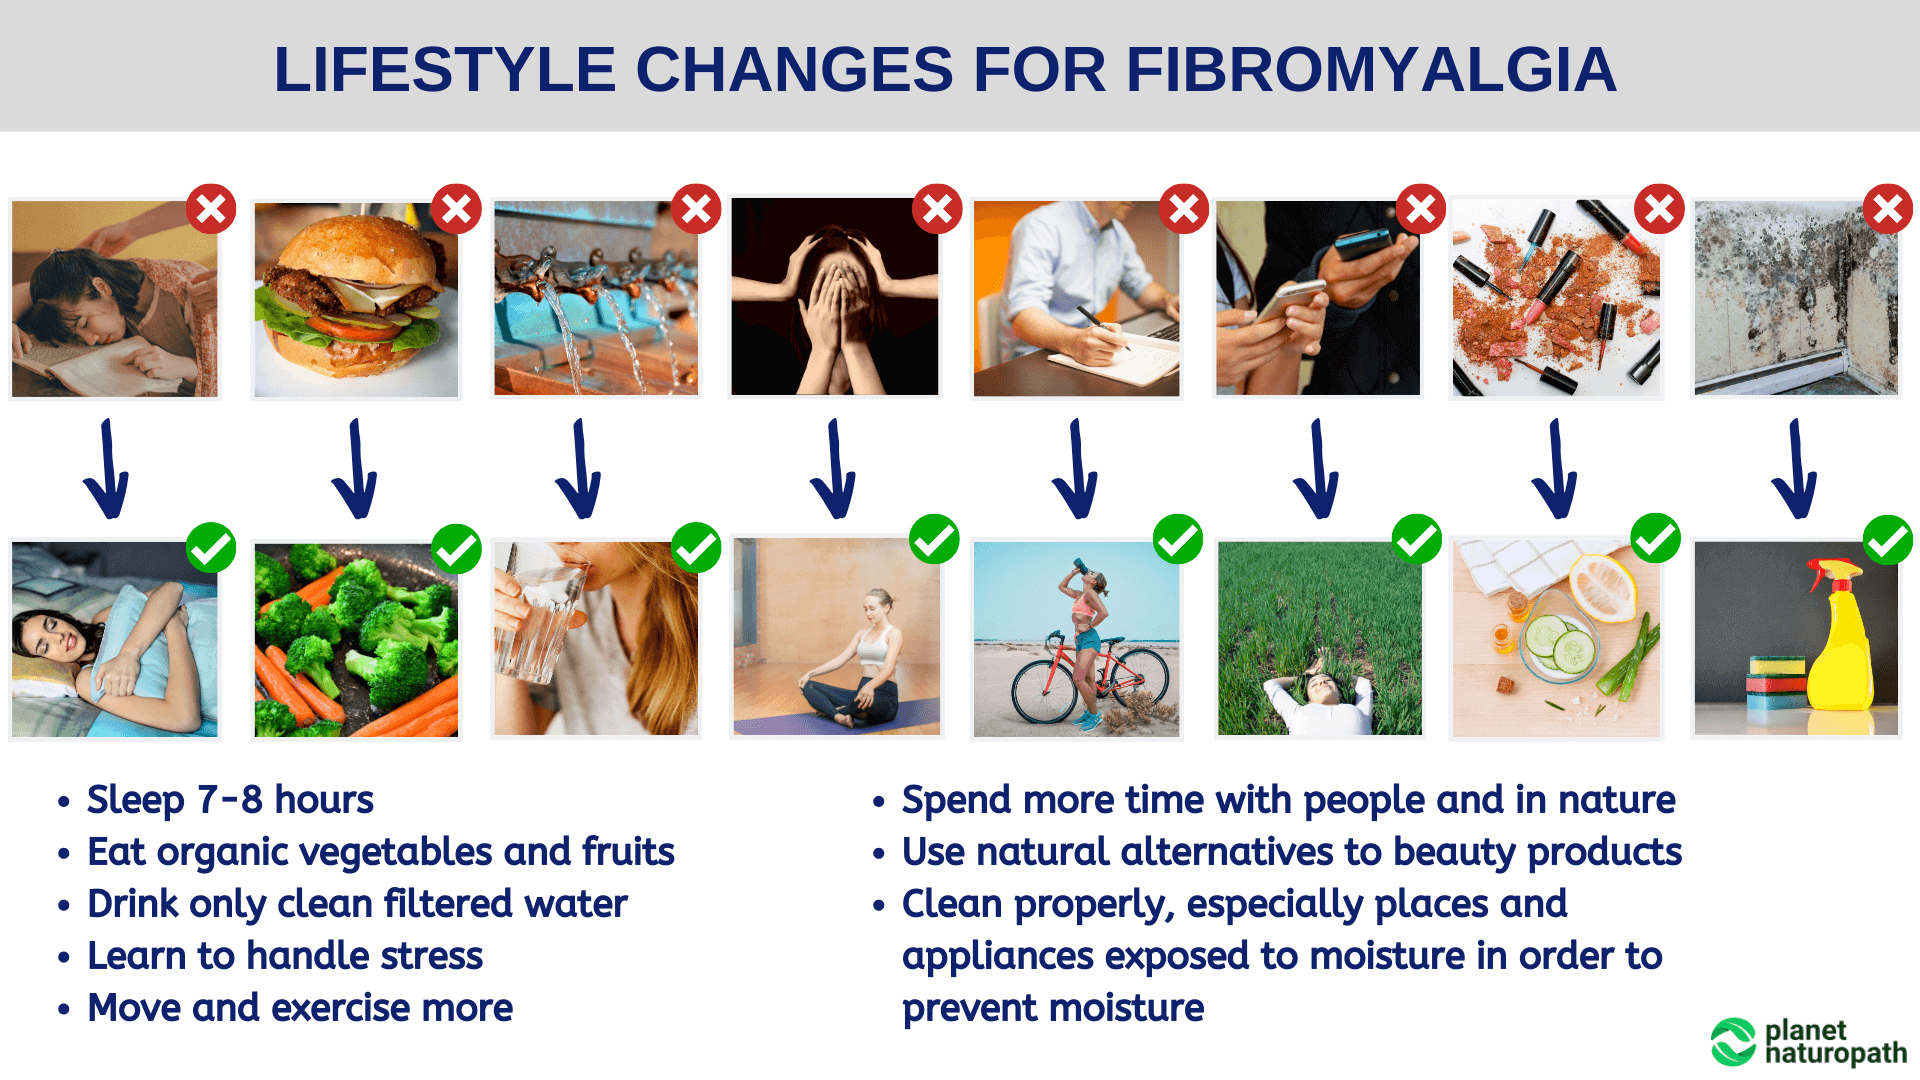 Lifestyle-Changes-for-Fibromyalgia